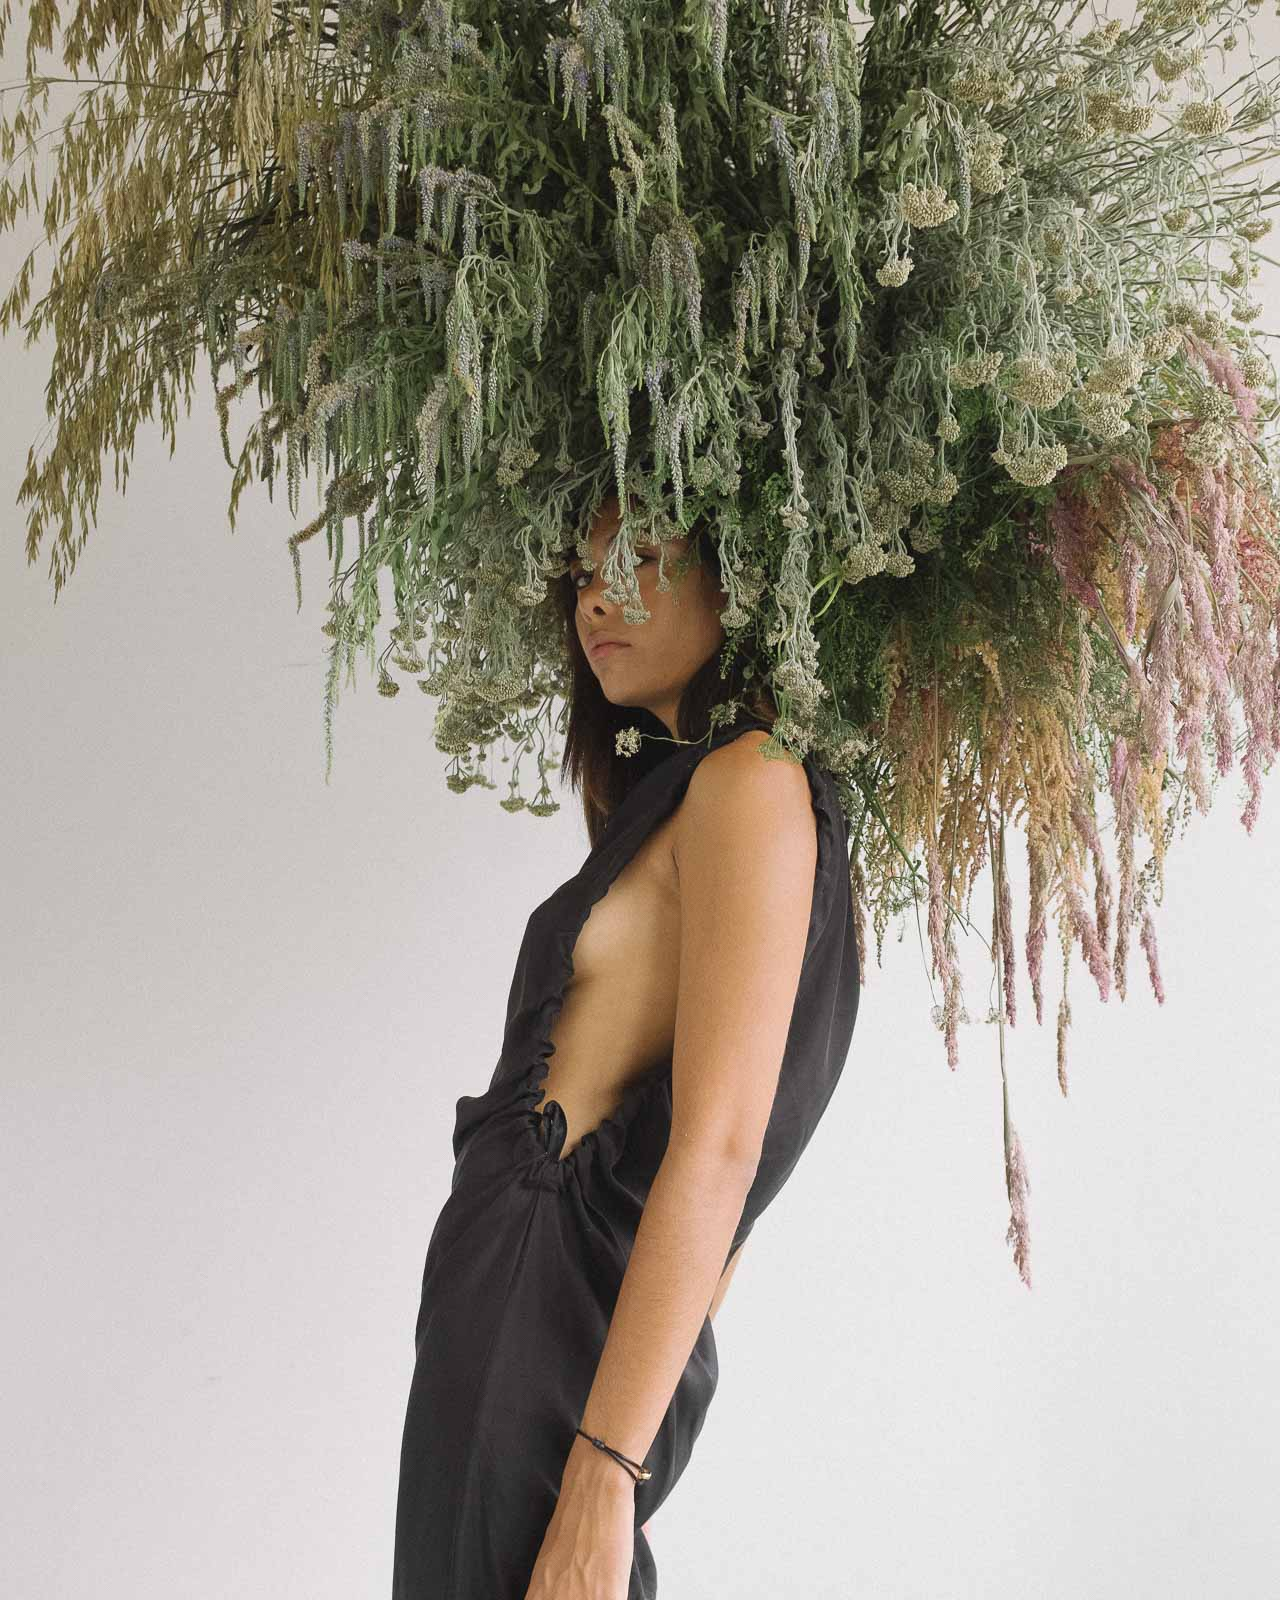 storm wears by malene birger black dress shot by marius knieling at studio230 flowers by studiolilo